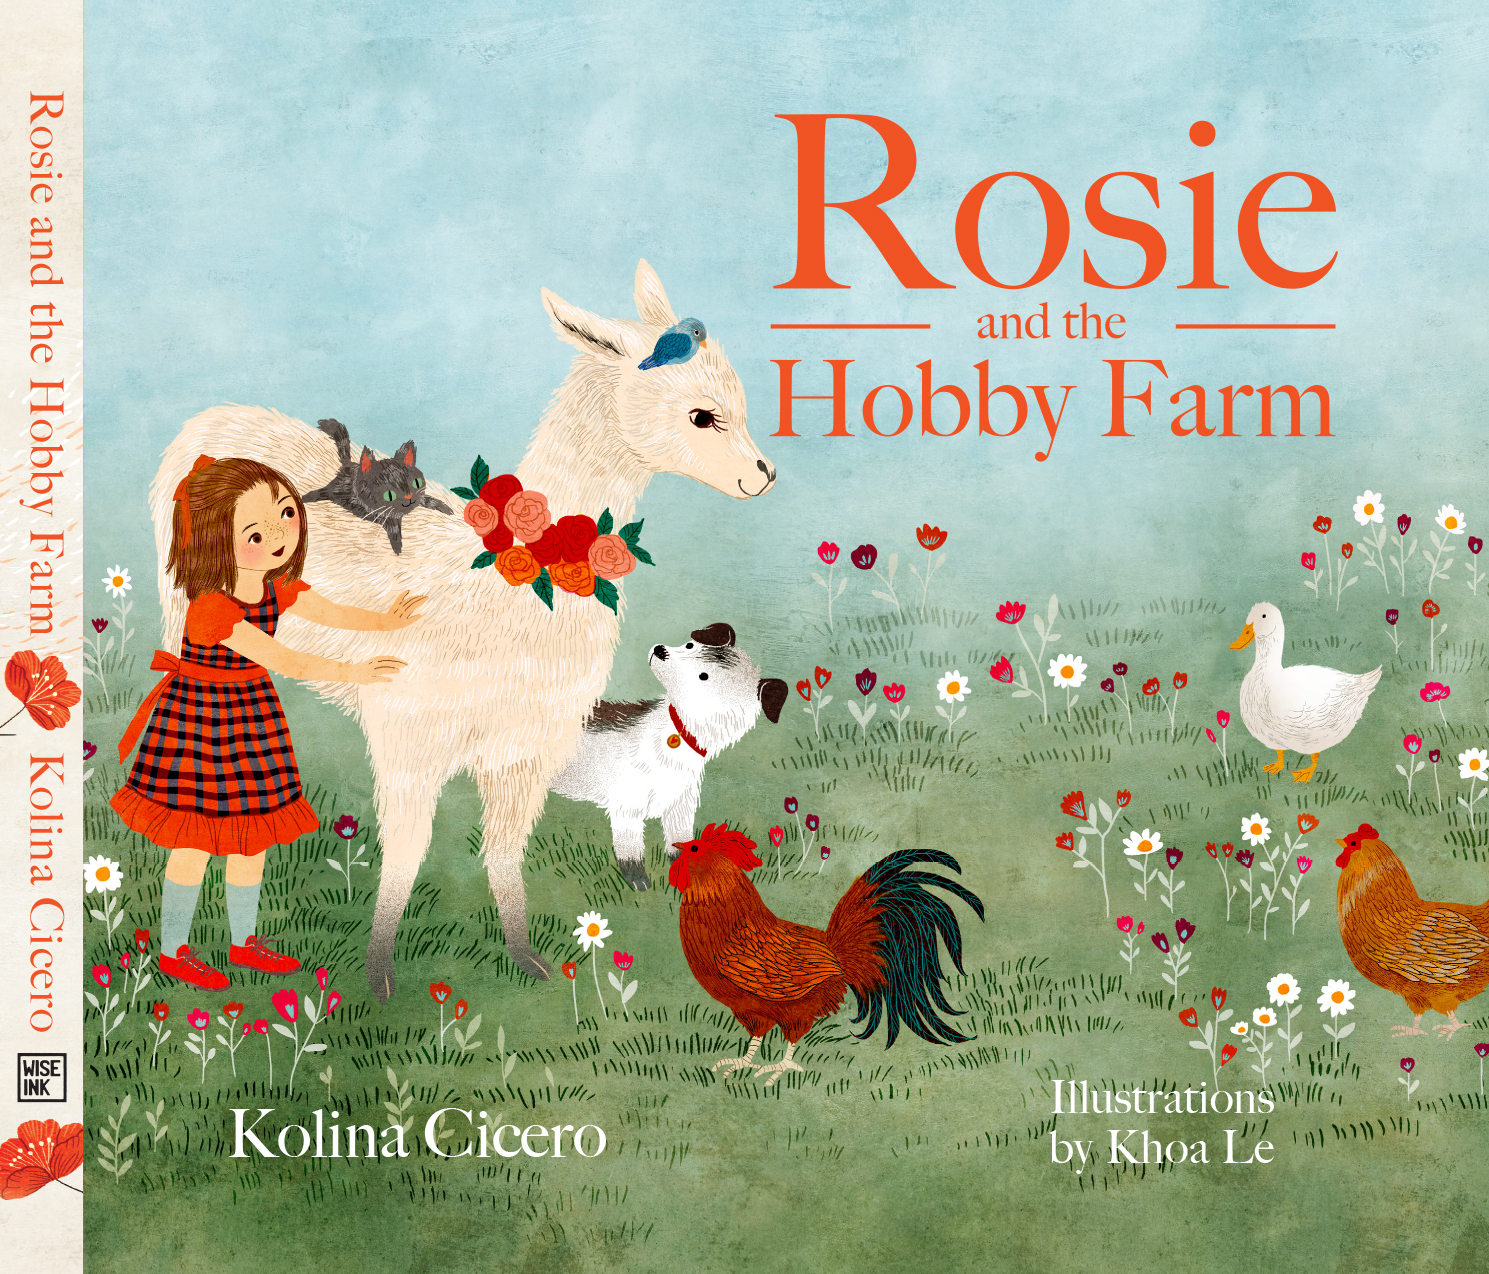 Rosie and the Hobby Farm book design by Aurora Whittet Best